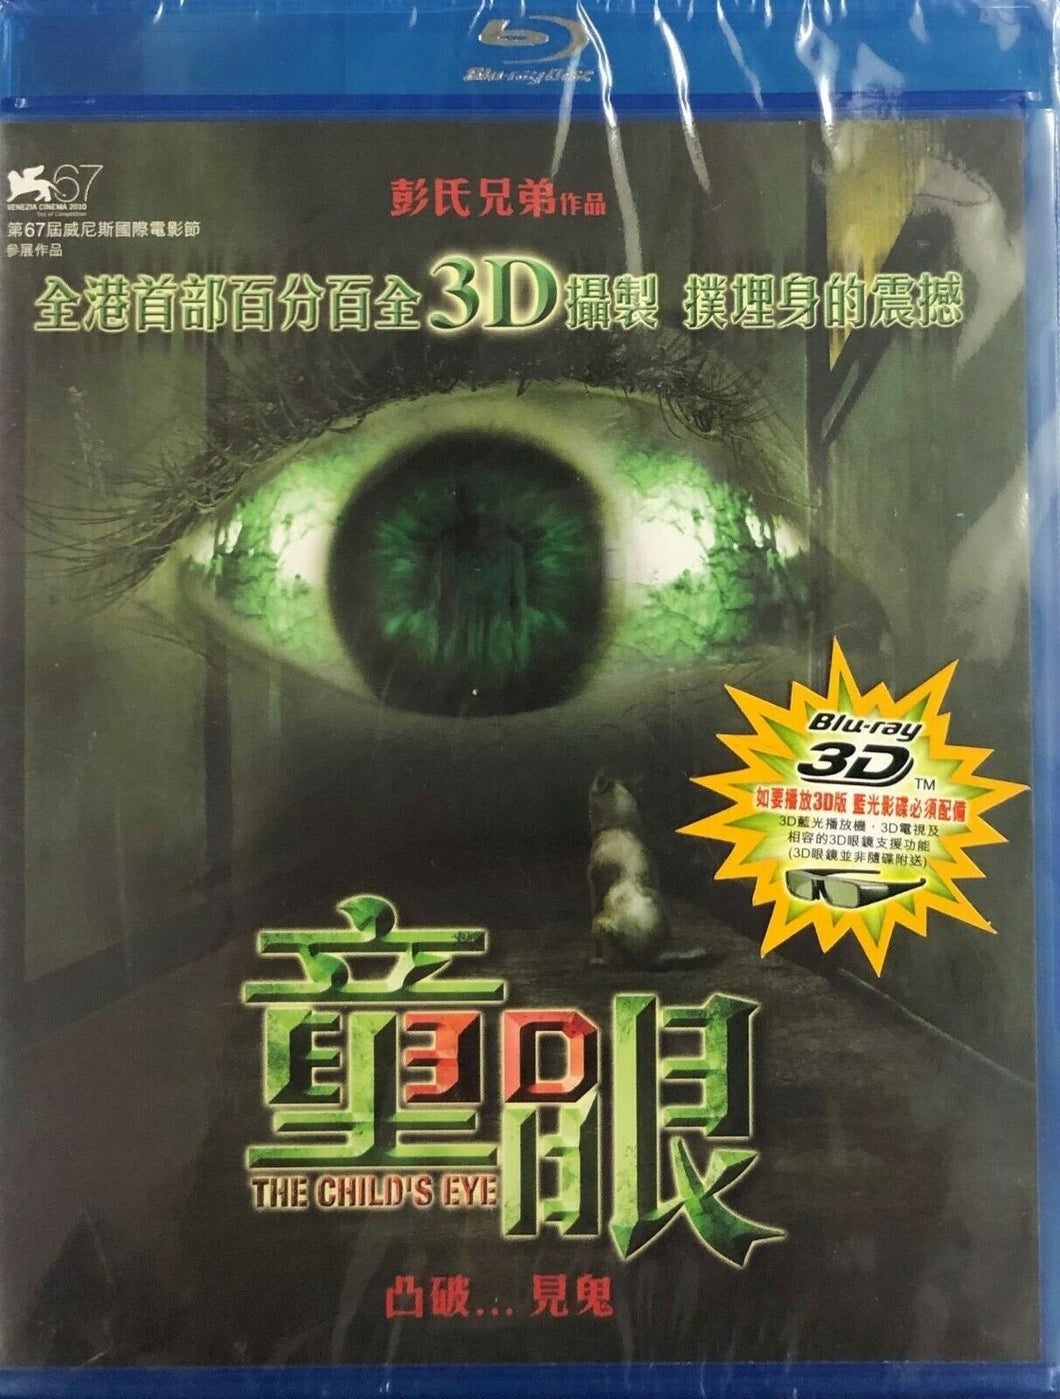 The Child's Eye 童眼3D 2010 (H.K) 2d + 3d BLU-RAY with English Subtitles (Region A)